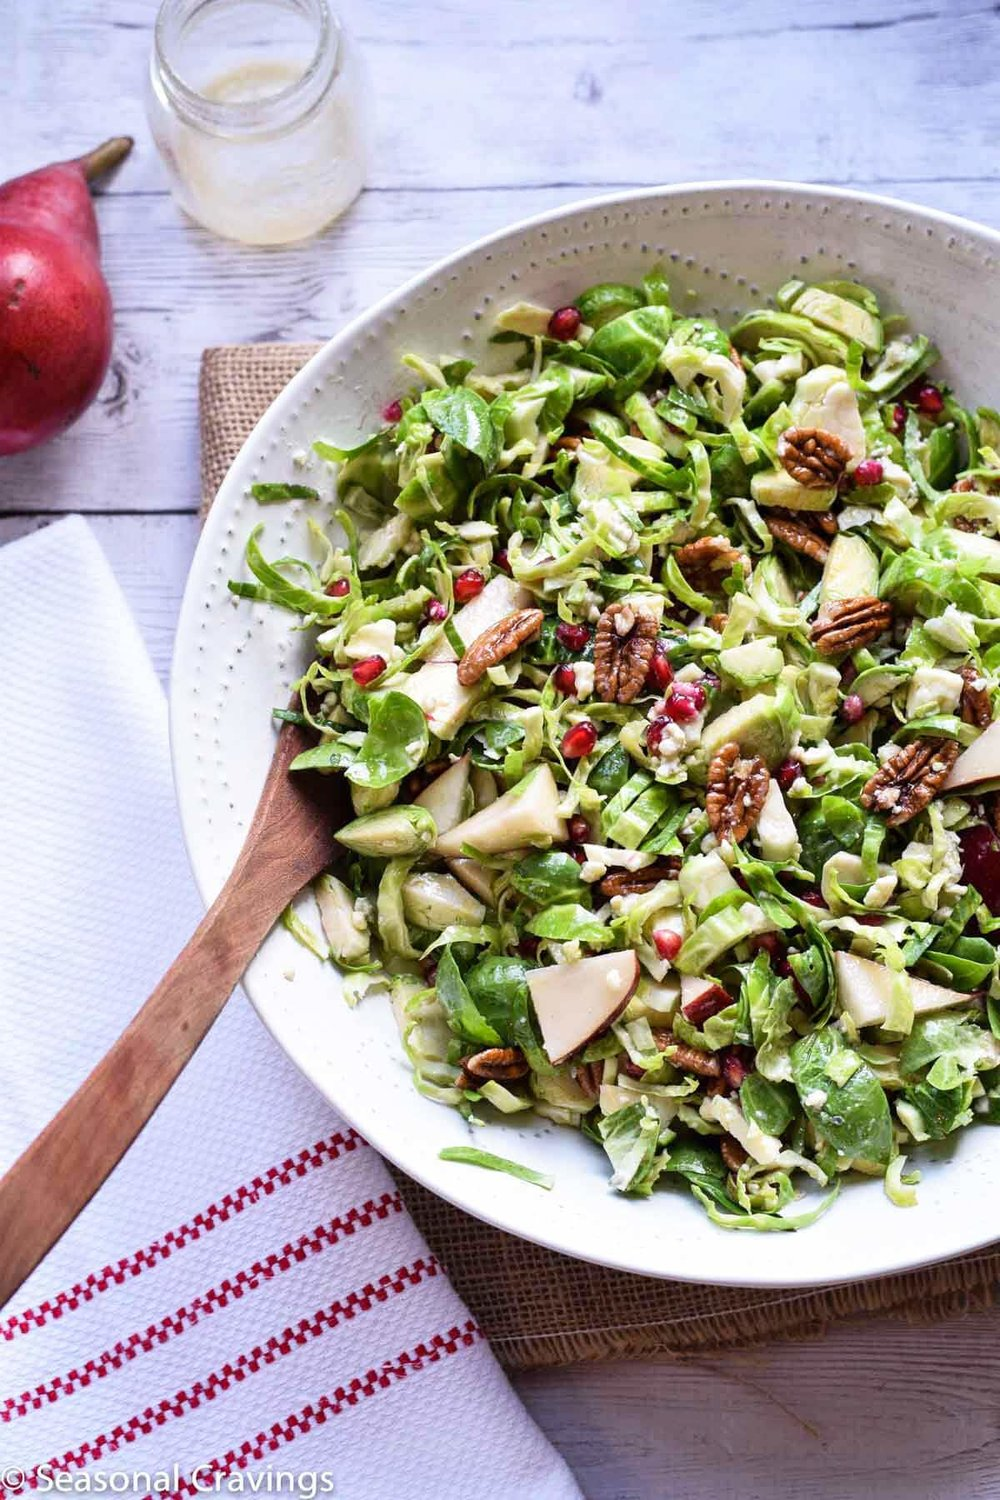 Brussels Sprouts Salad with Pear and Pomegranate from Seasonal Cravings | A roundup from Shiny Happy Bright